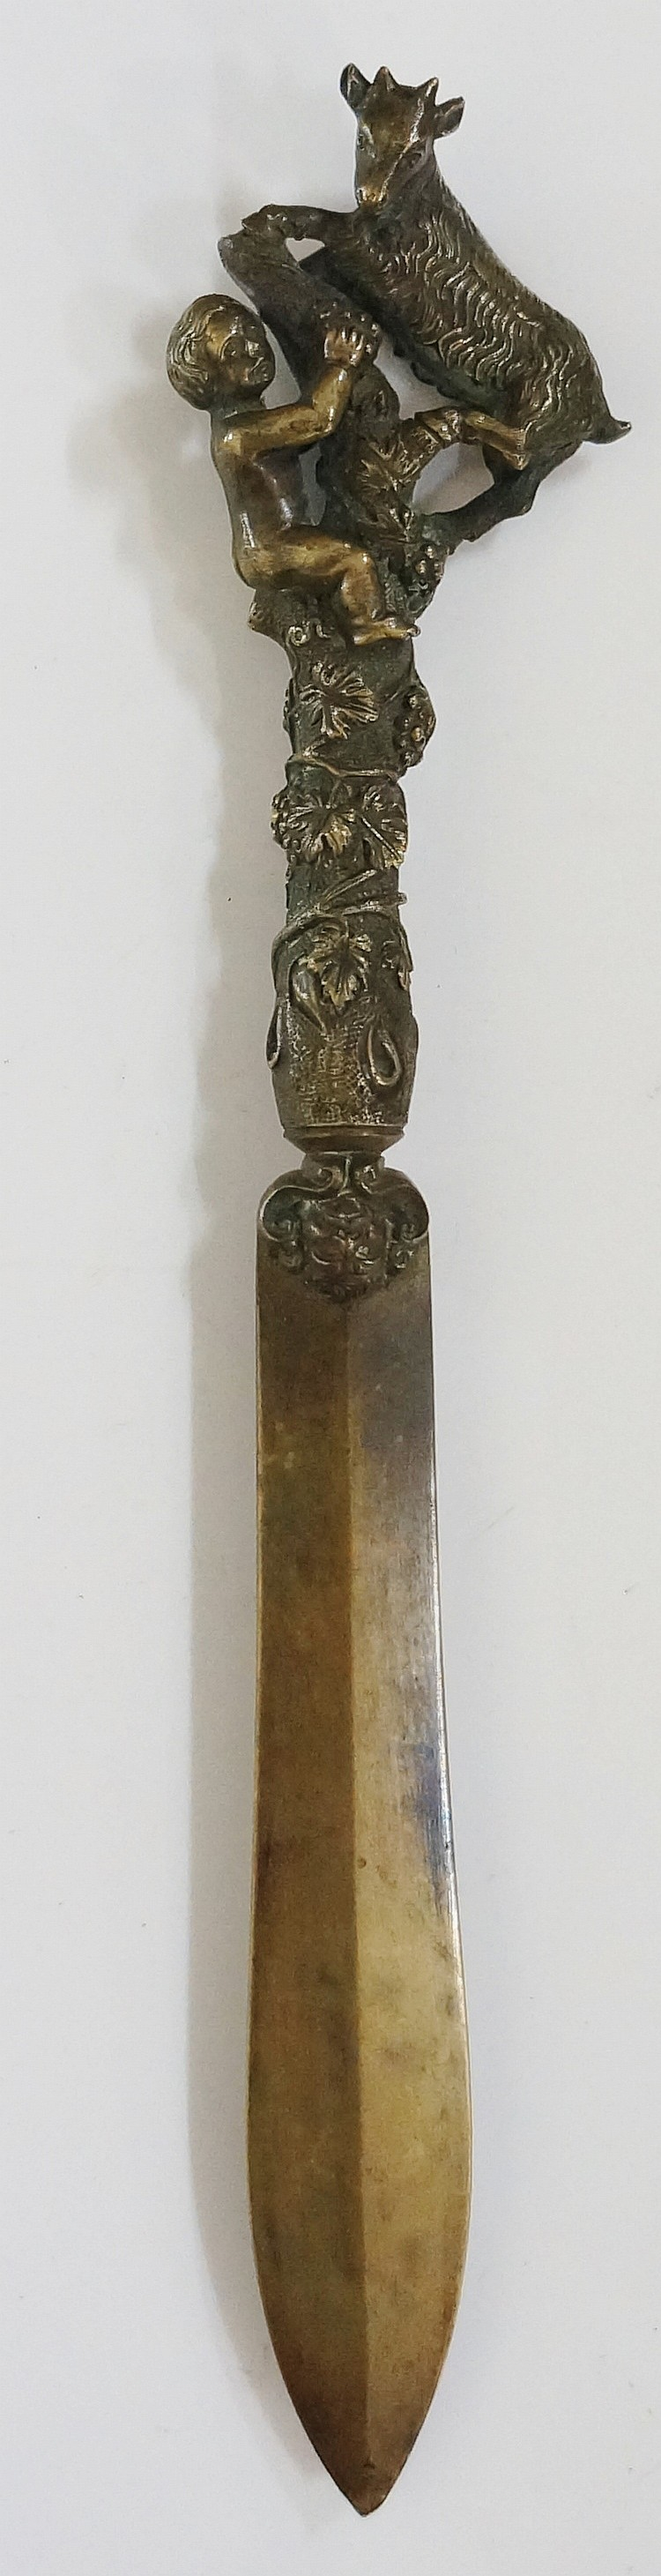 A 19th Century French bronze letter knife, the tapered blade with a handle